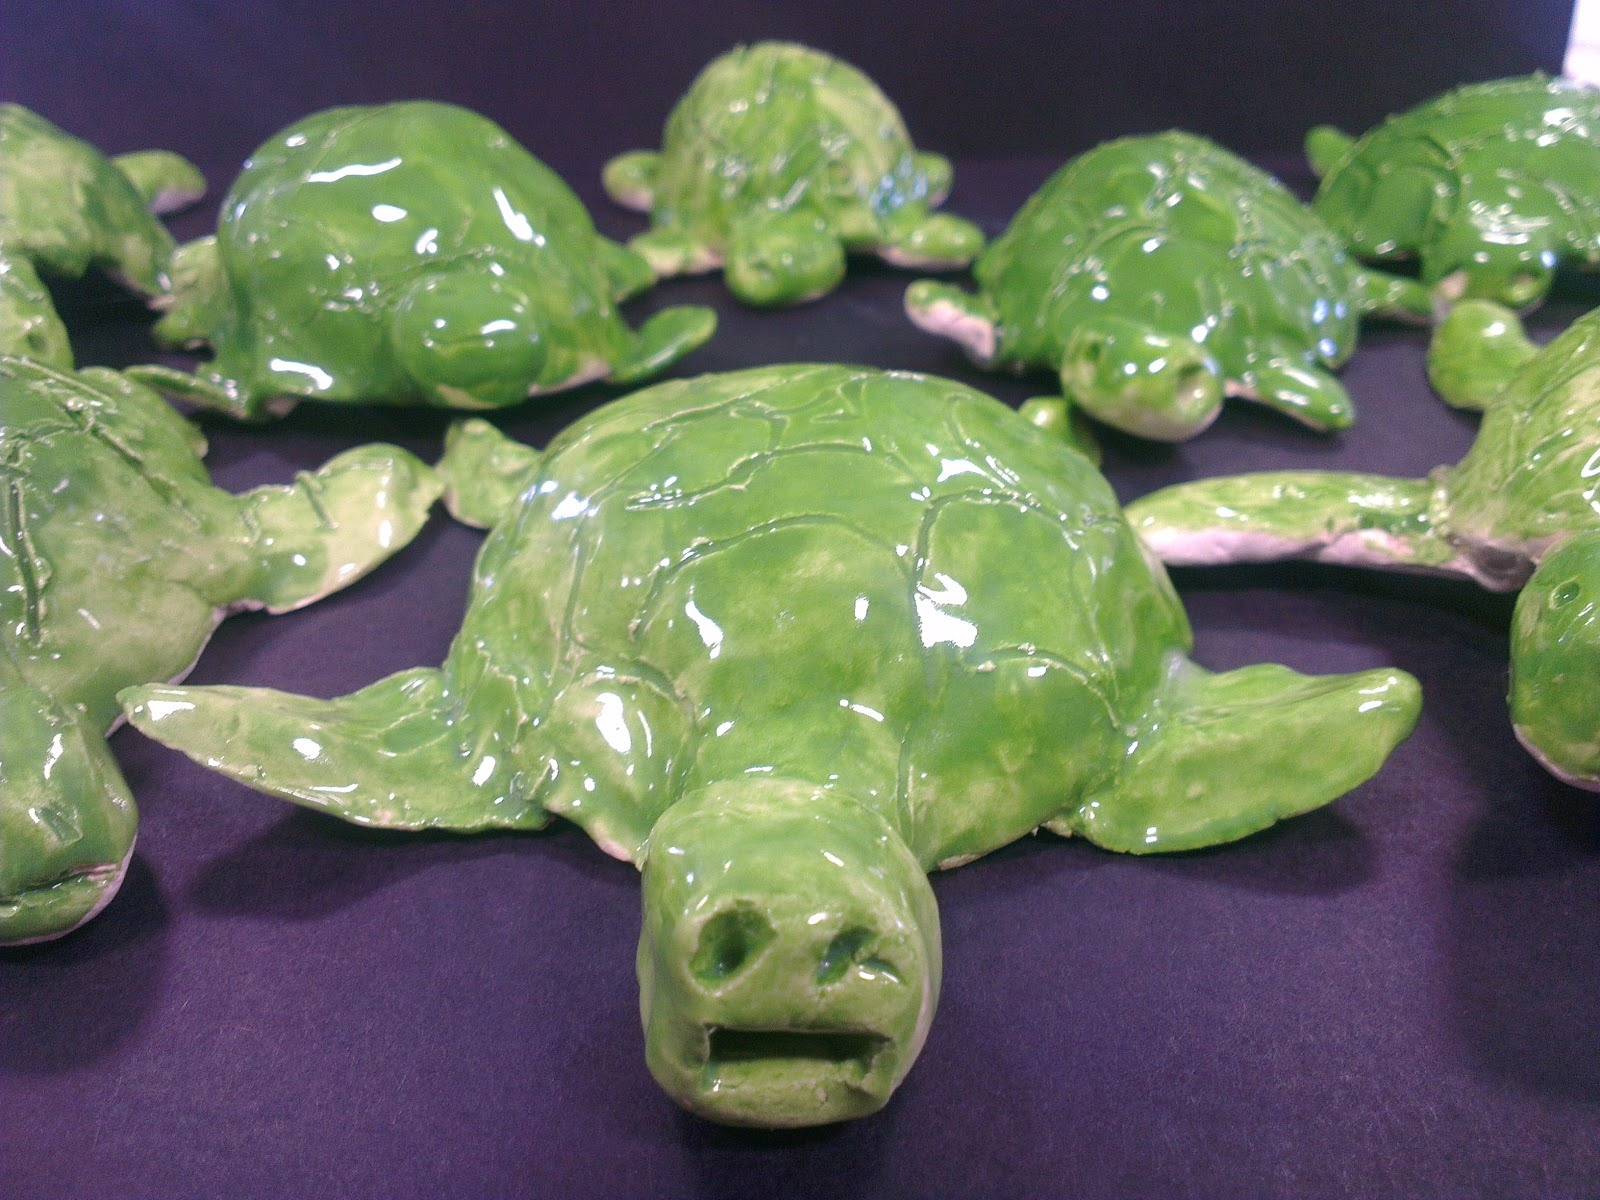 animal clay projects - photo #31